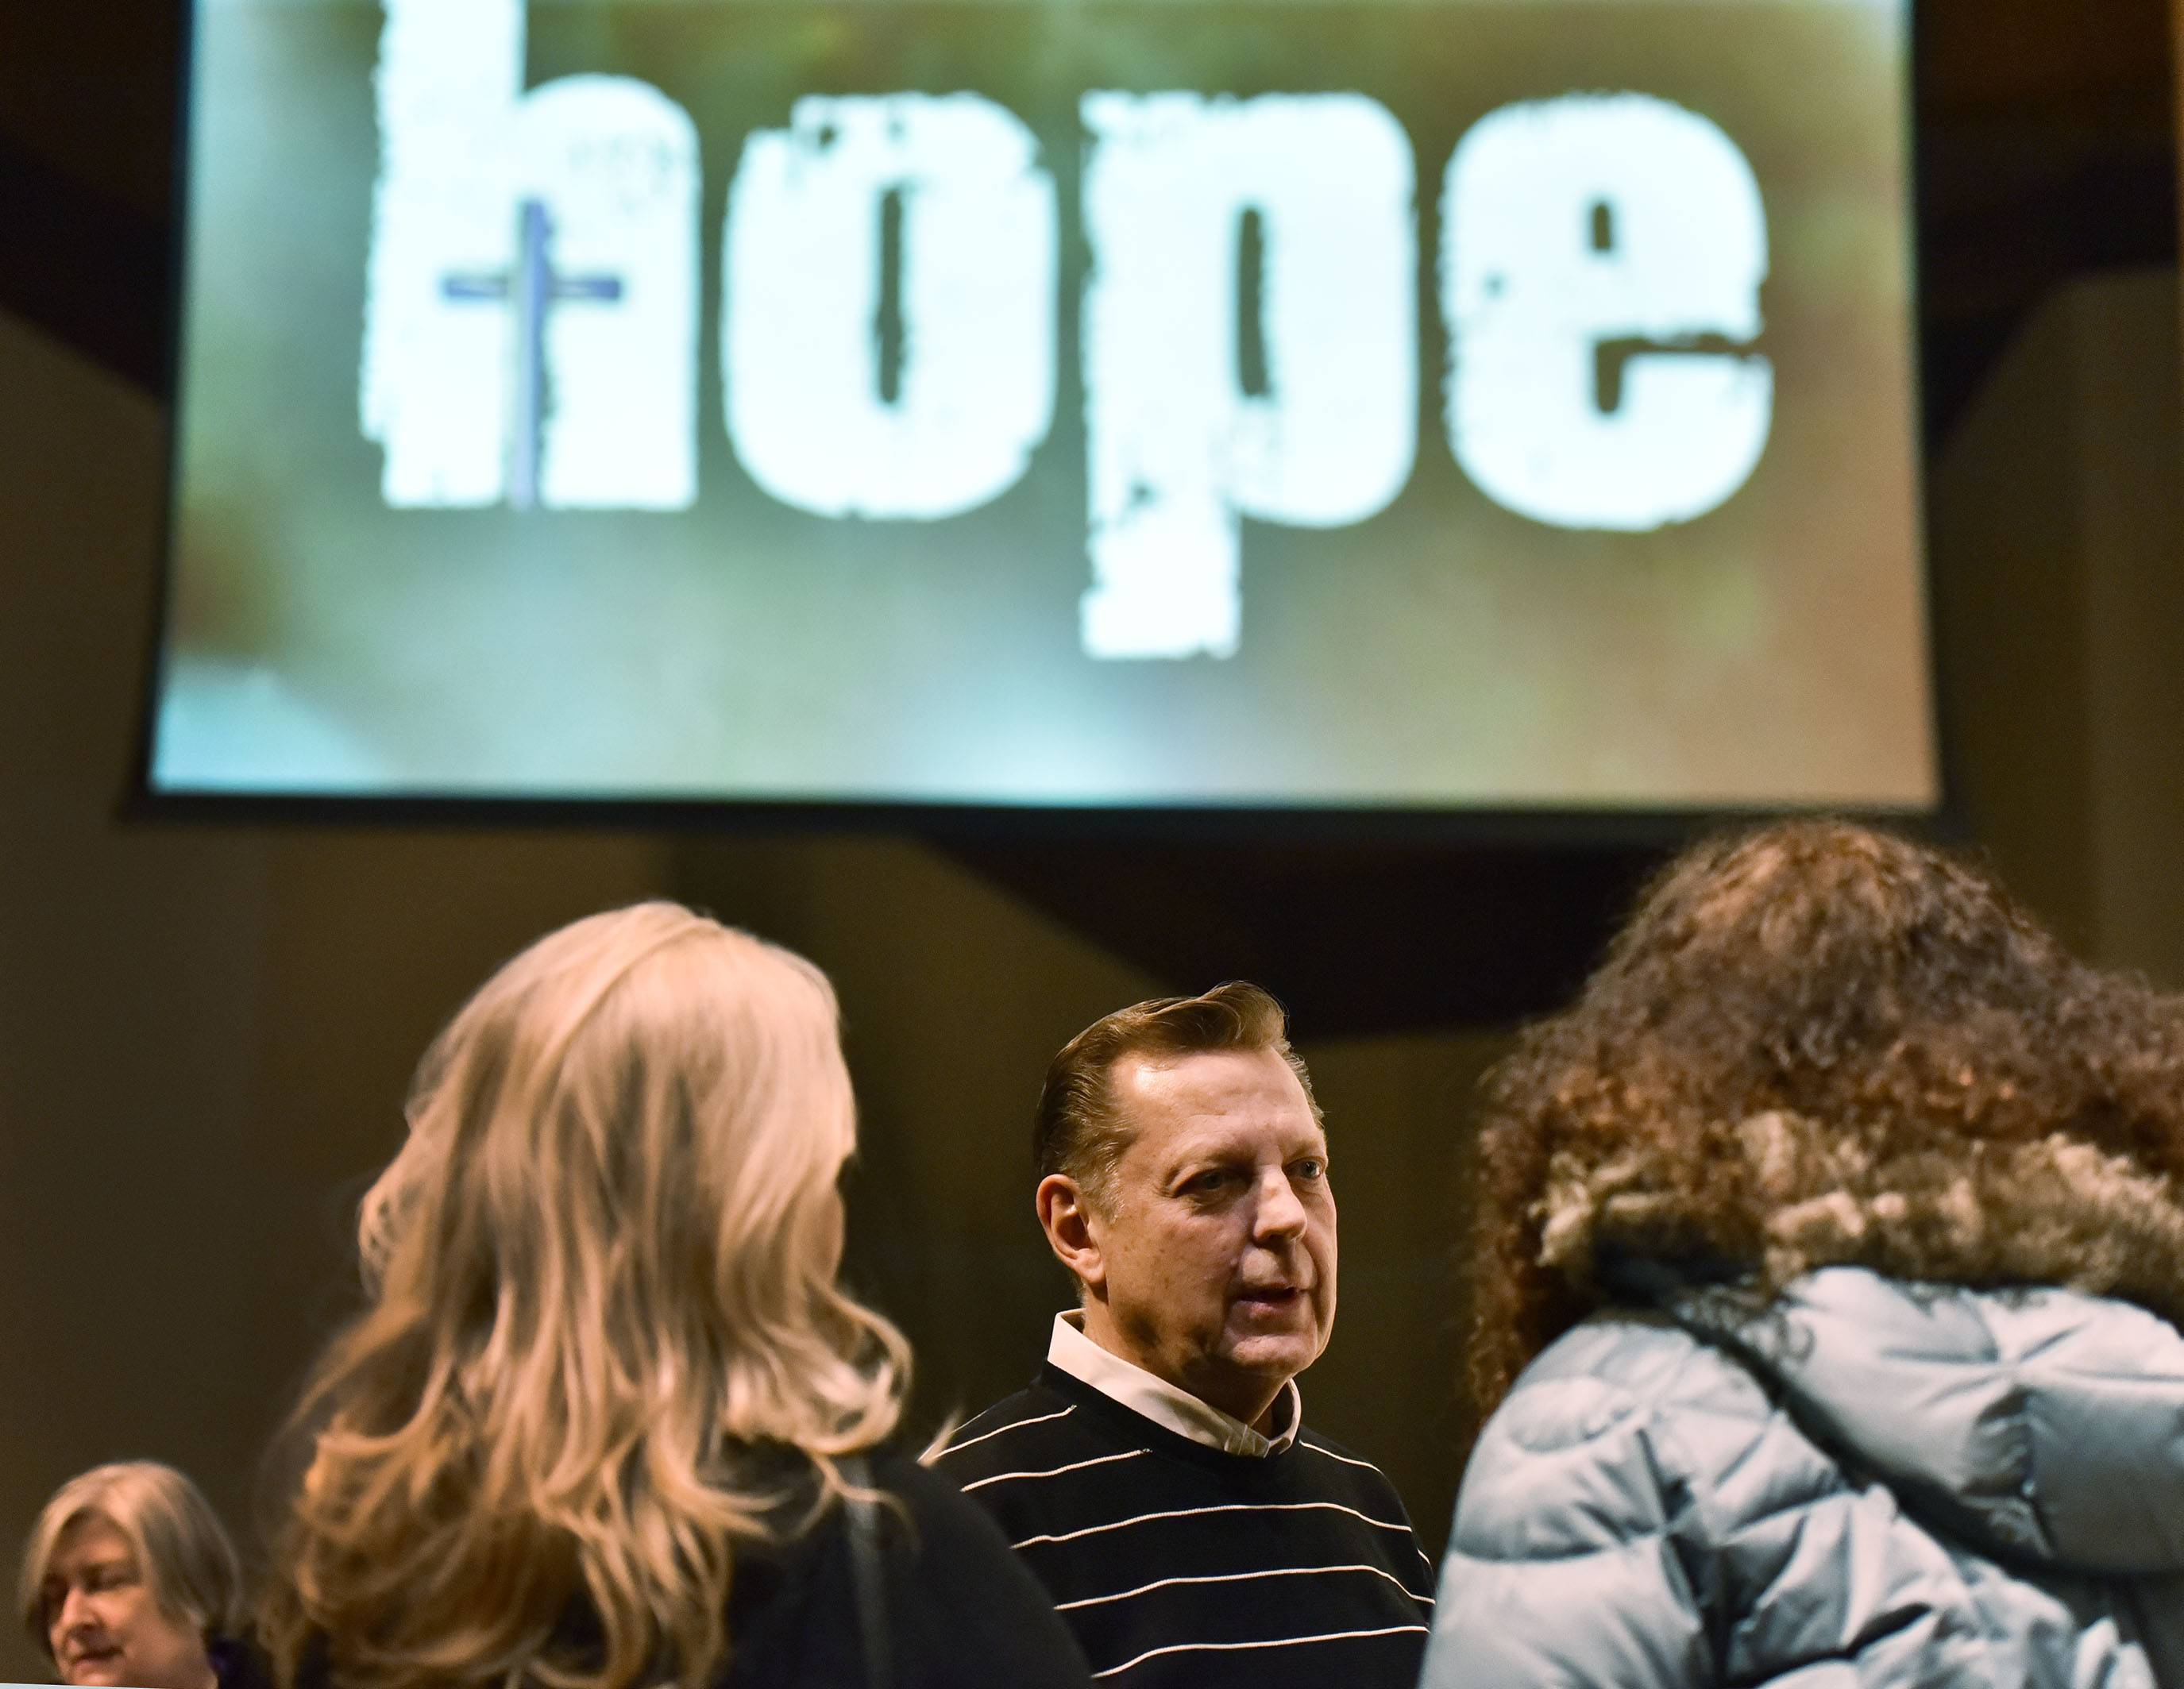 Chicago activist priest Michael Pfleger talks with parishioners after a speech at Holy Family Catholic Community in Inverness Thursday night.